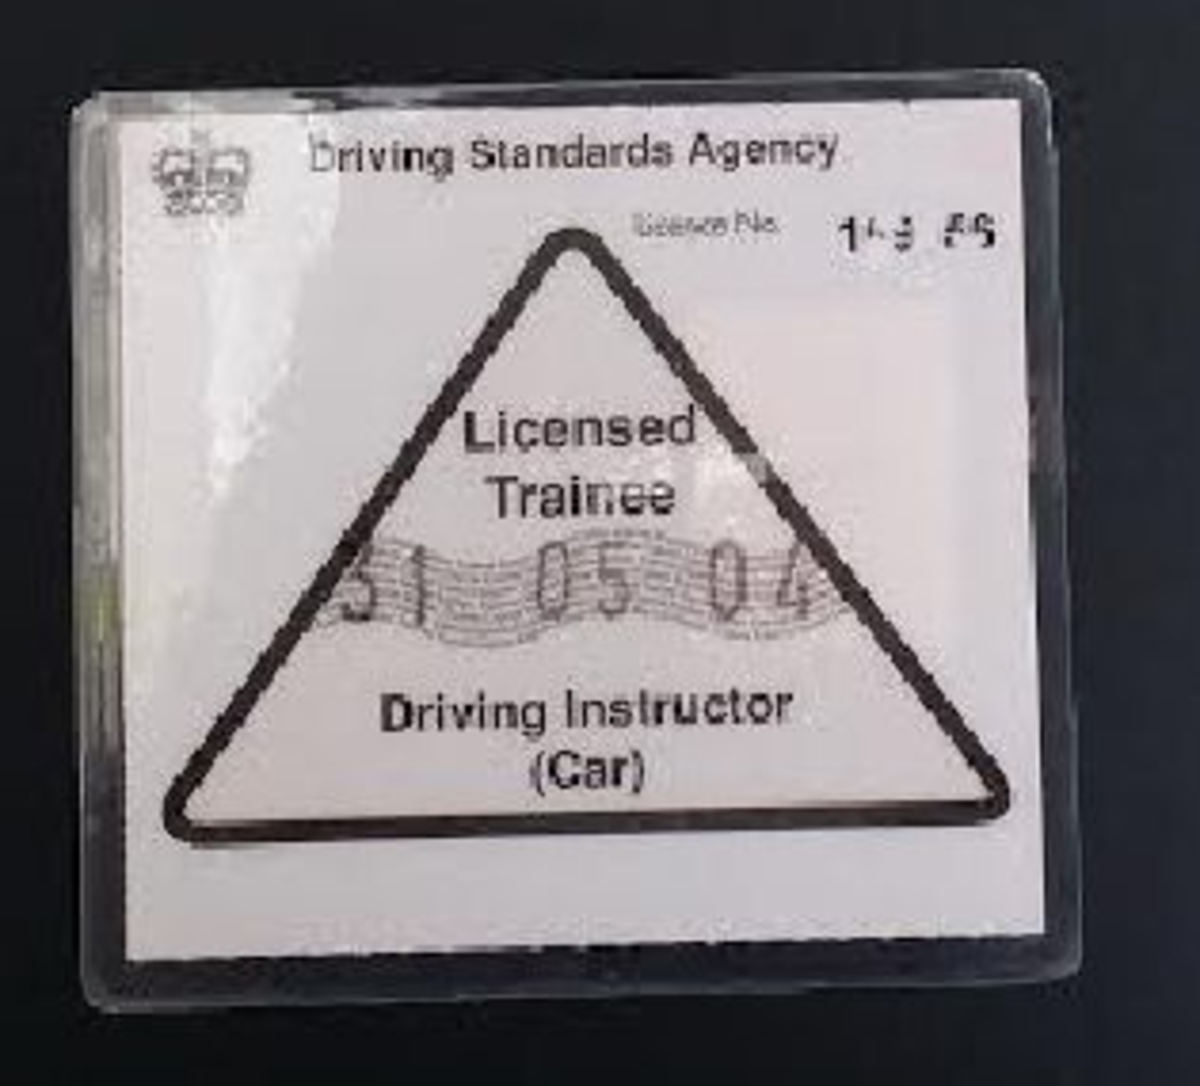 Trainee driving instructor licence also known as a pink badge or pink licence